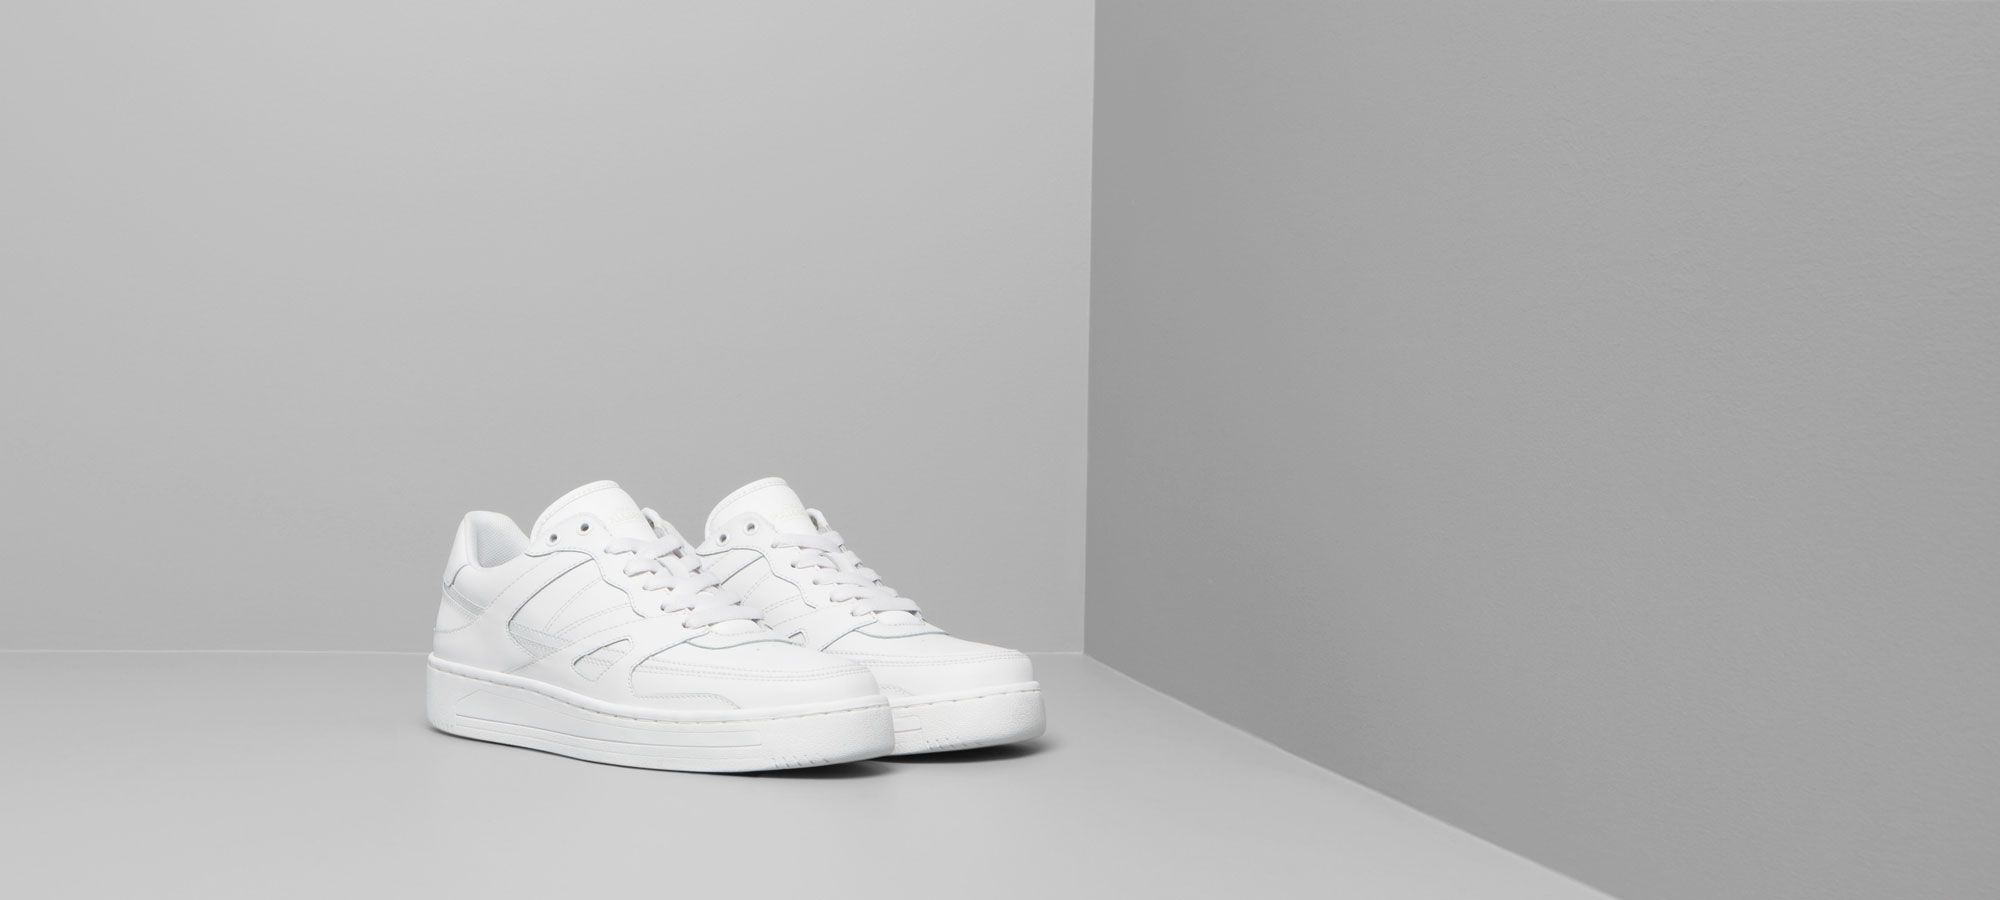 Zapatos Pull and Bear blancos deportivos